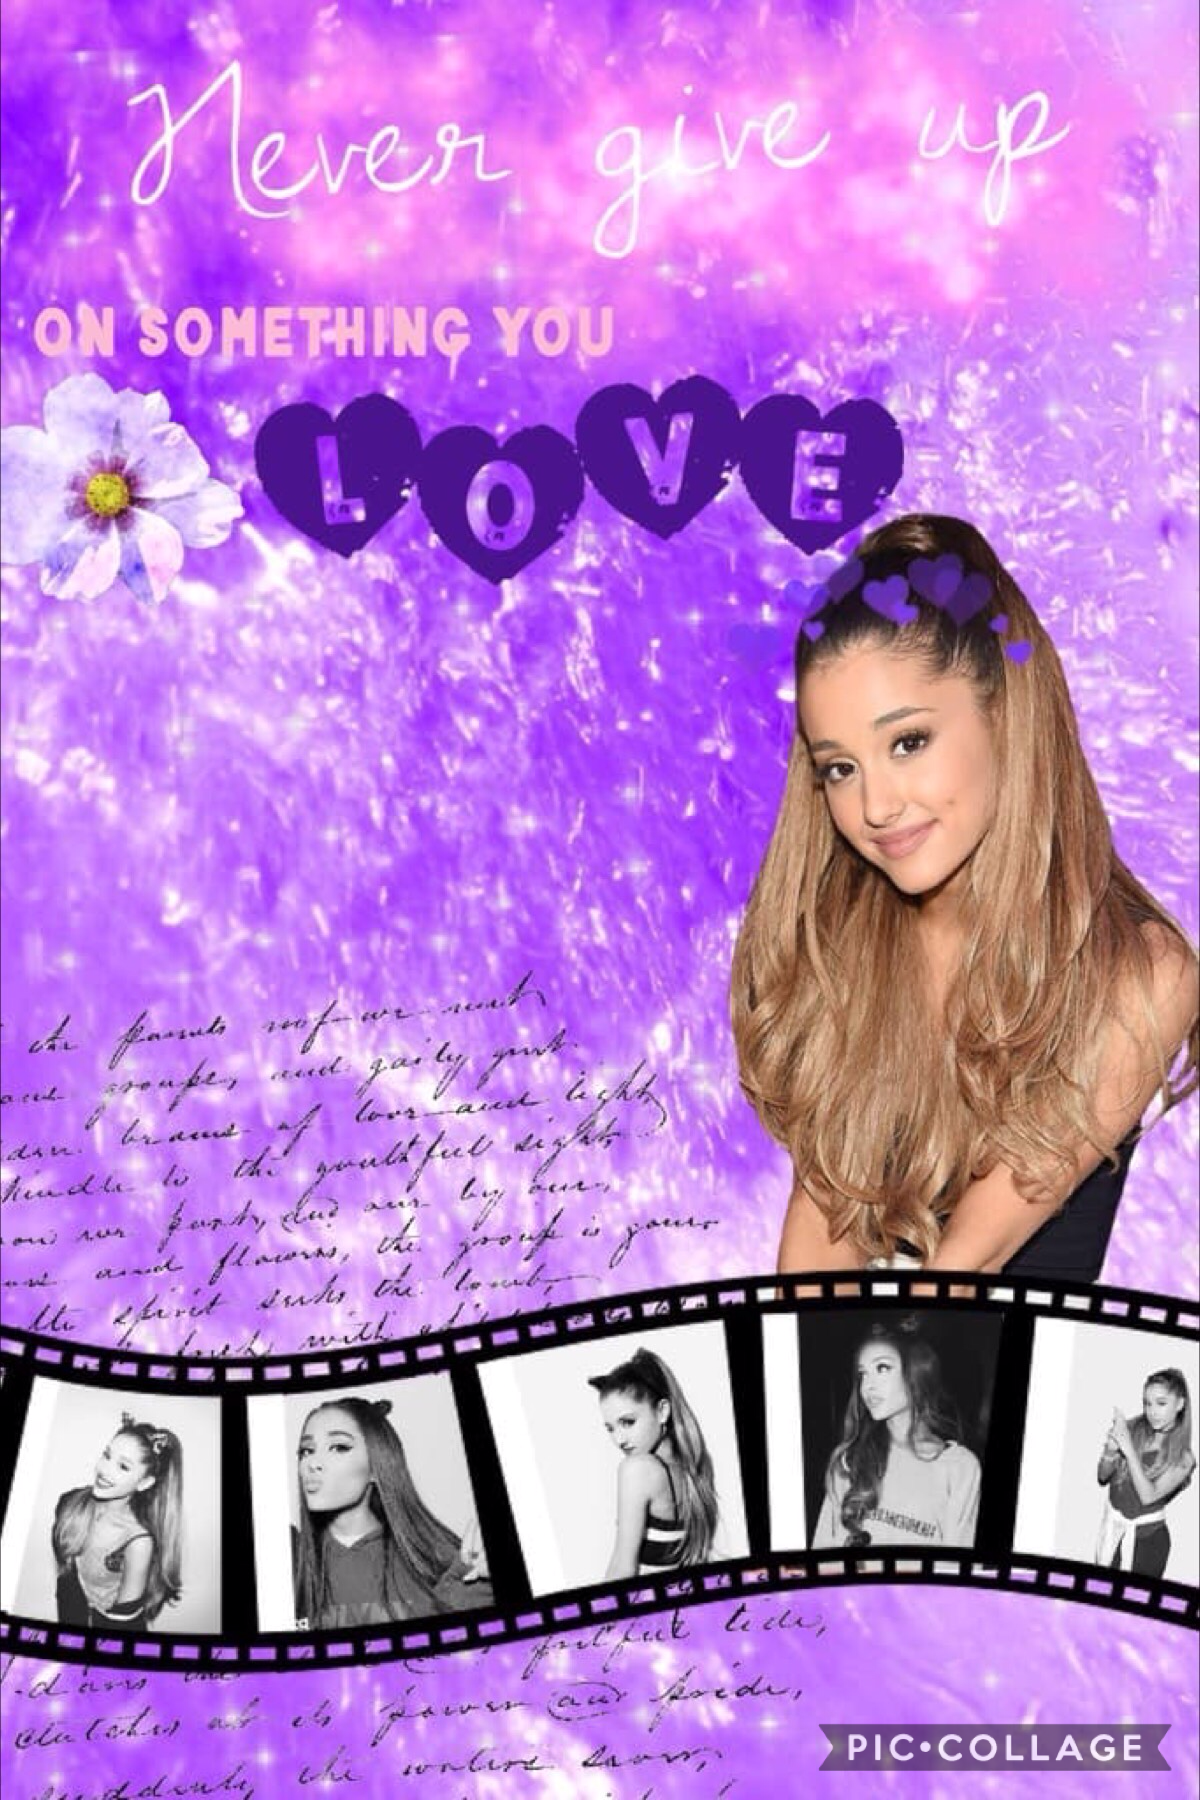 Collab with... DANCEMOMSBAES! She is an amazing person so make sure to go follow her rn!